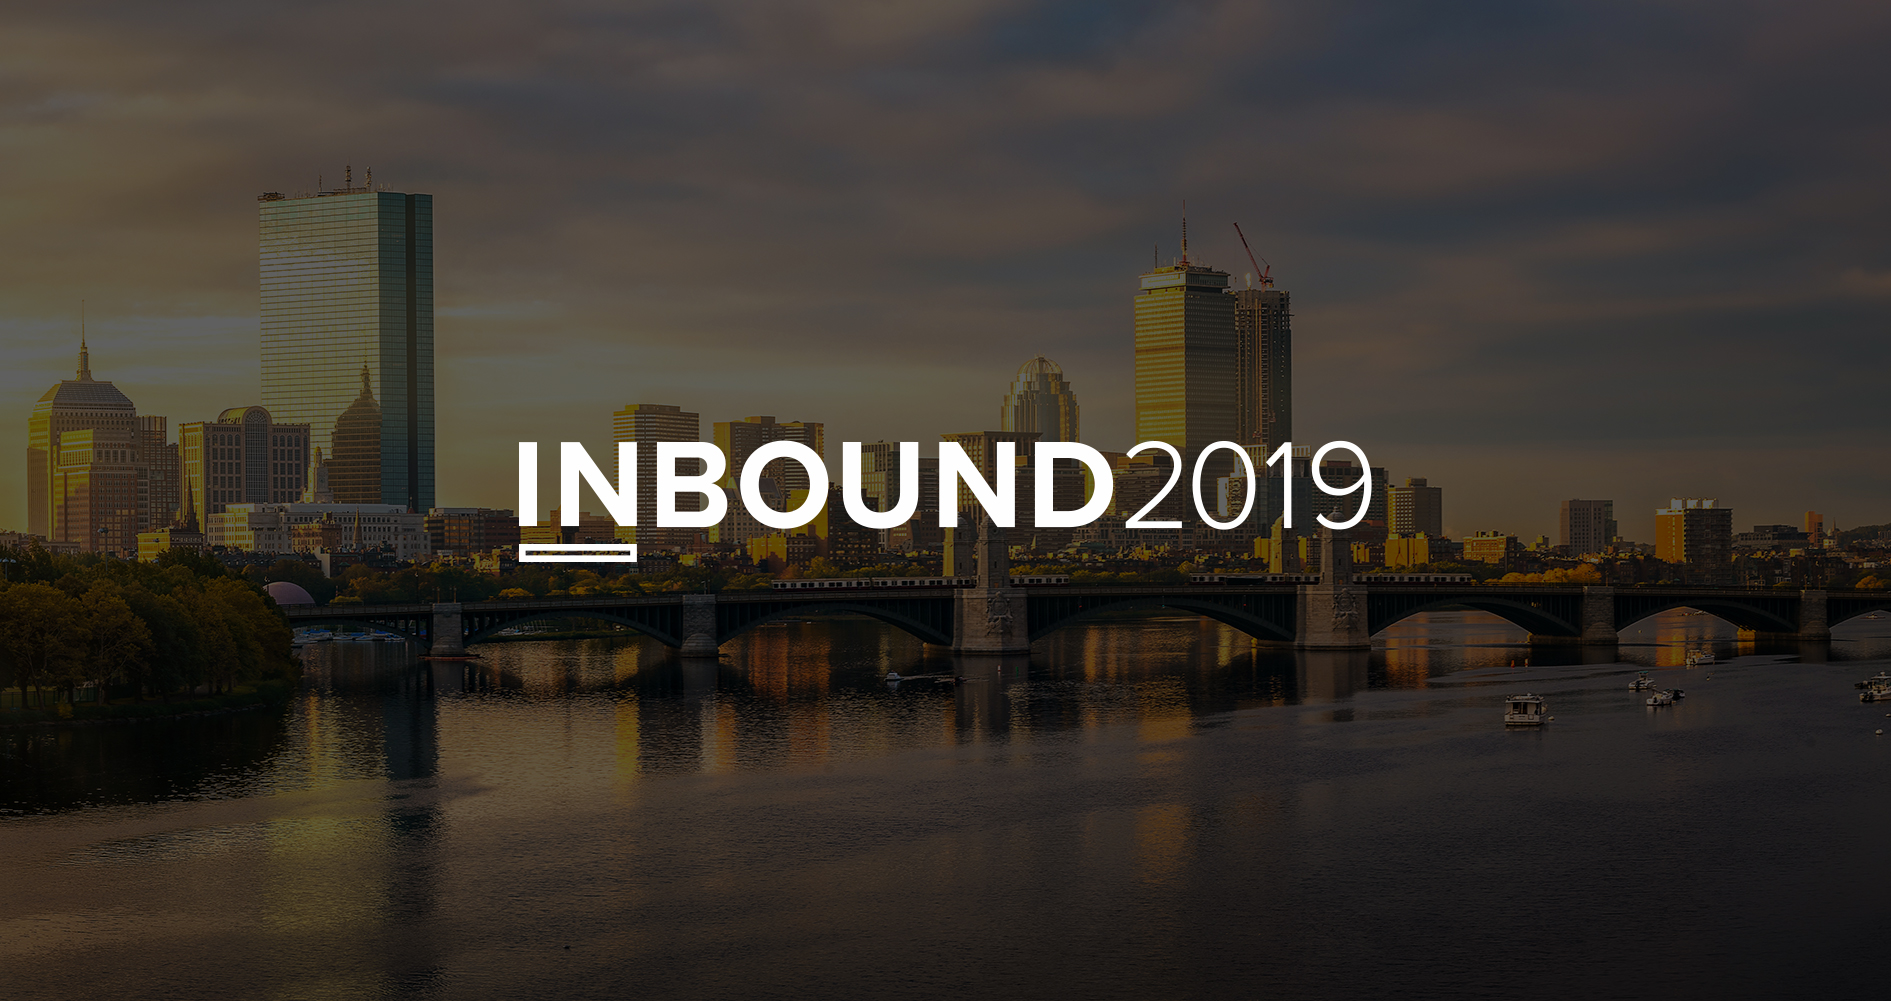 Posizionate asiste a #INBOUND19, la cumbre mundial del Inbound Marketing